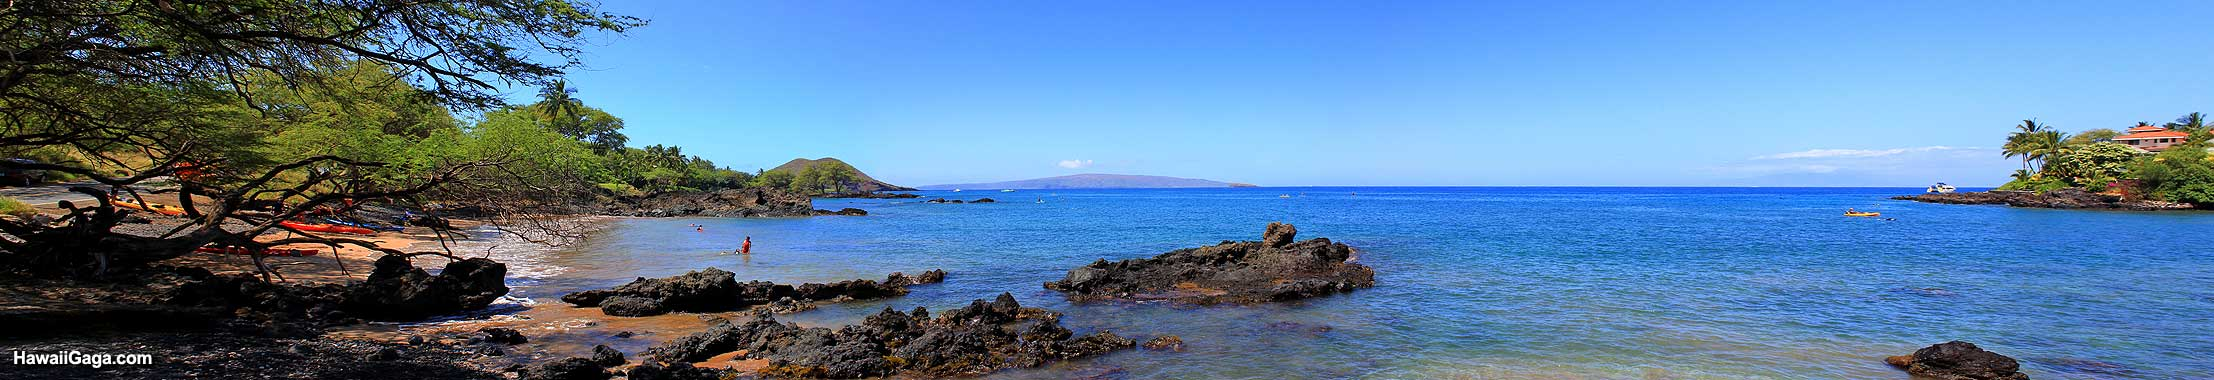 Makena Landing Beach Park panorama